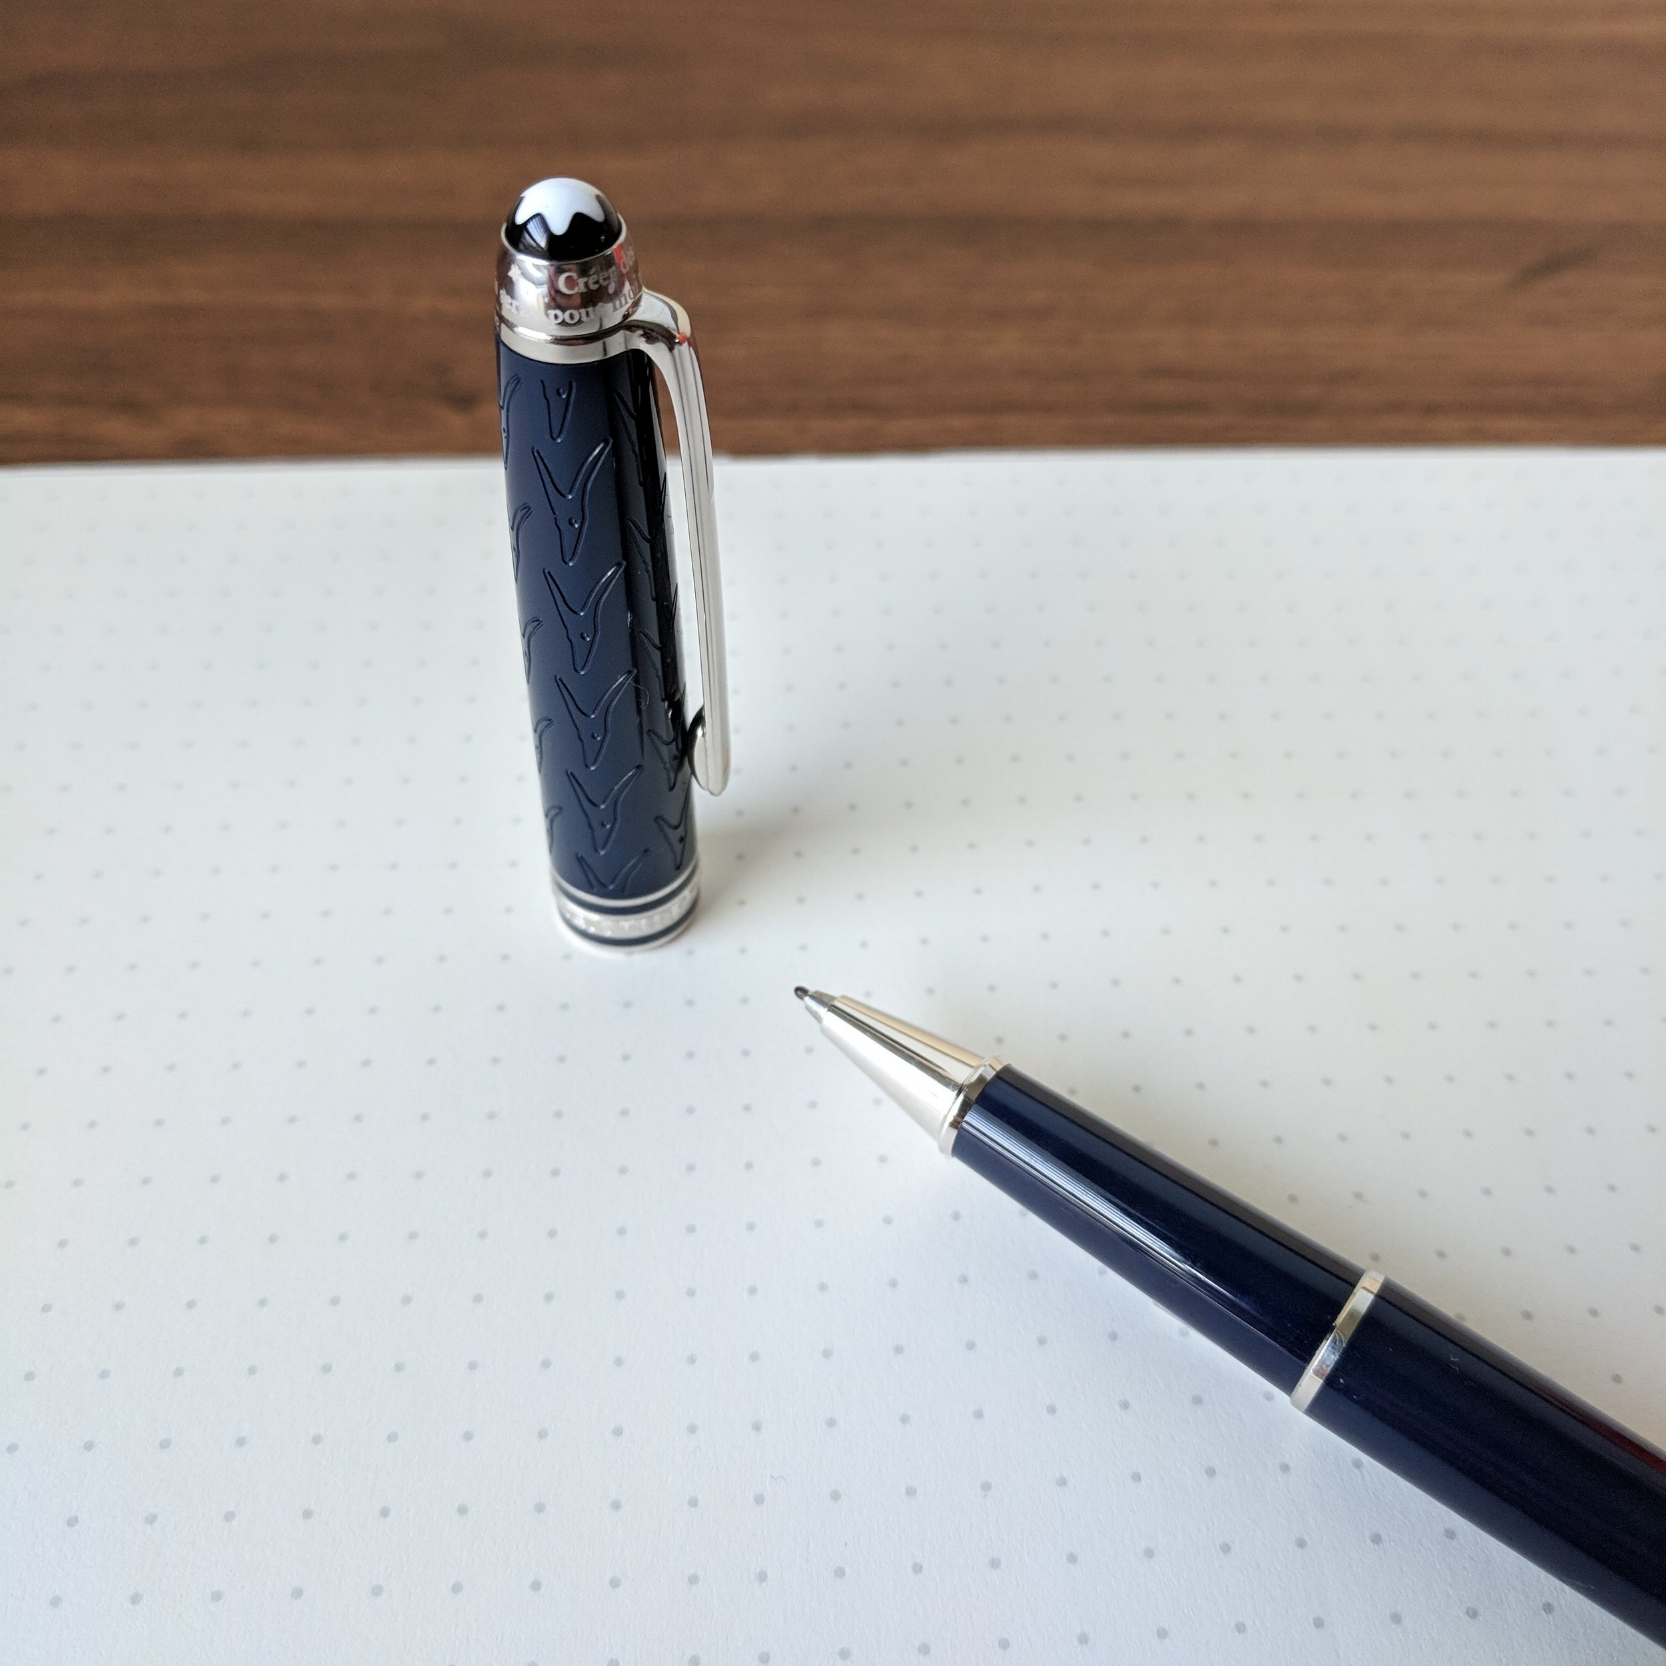 I've had this pen loaded with Montblanc's excellent fineliner refill, and haven't use much else, though the rollerball refills are also superb (if not the most wallet-friendly).